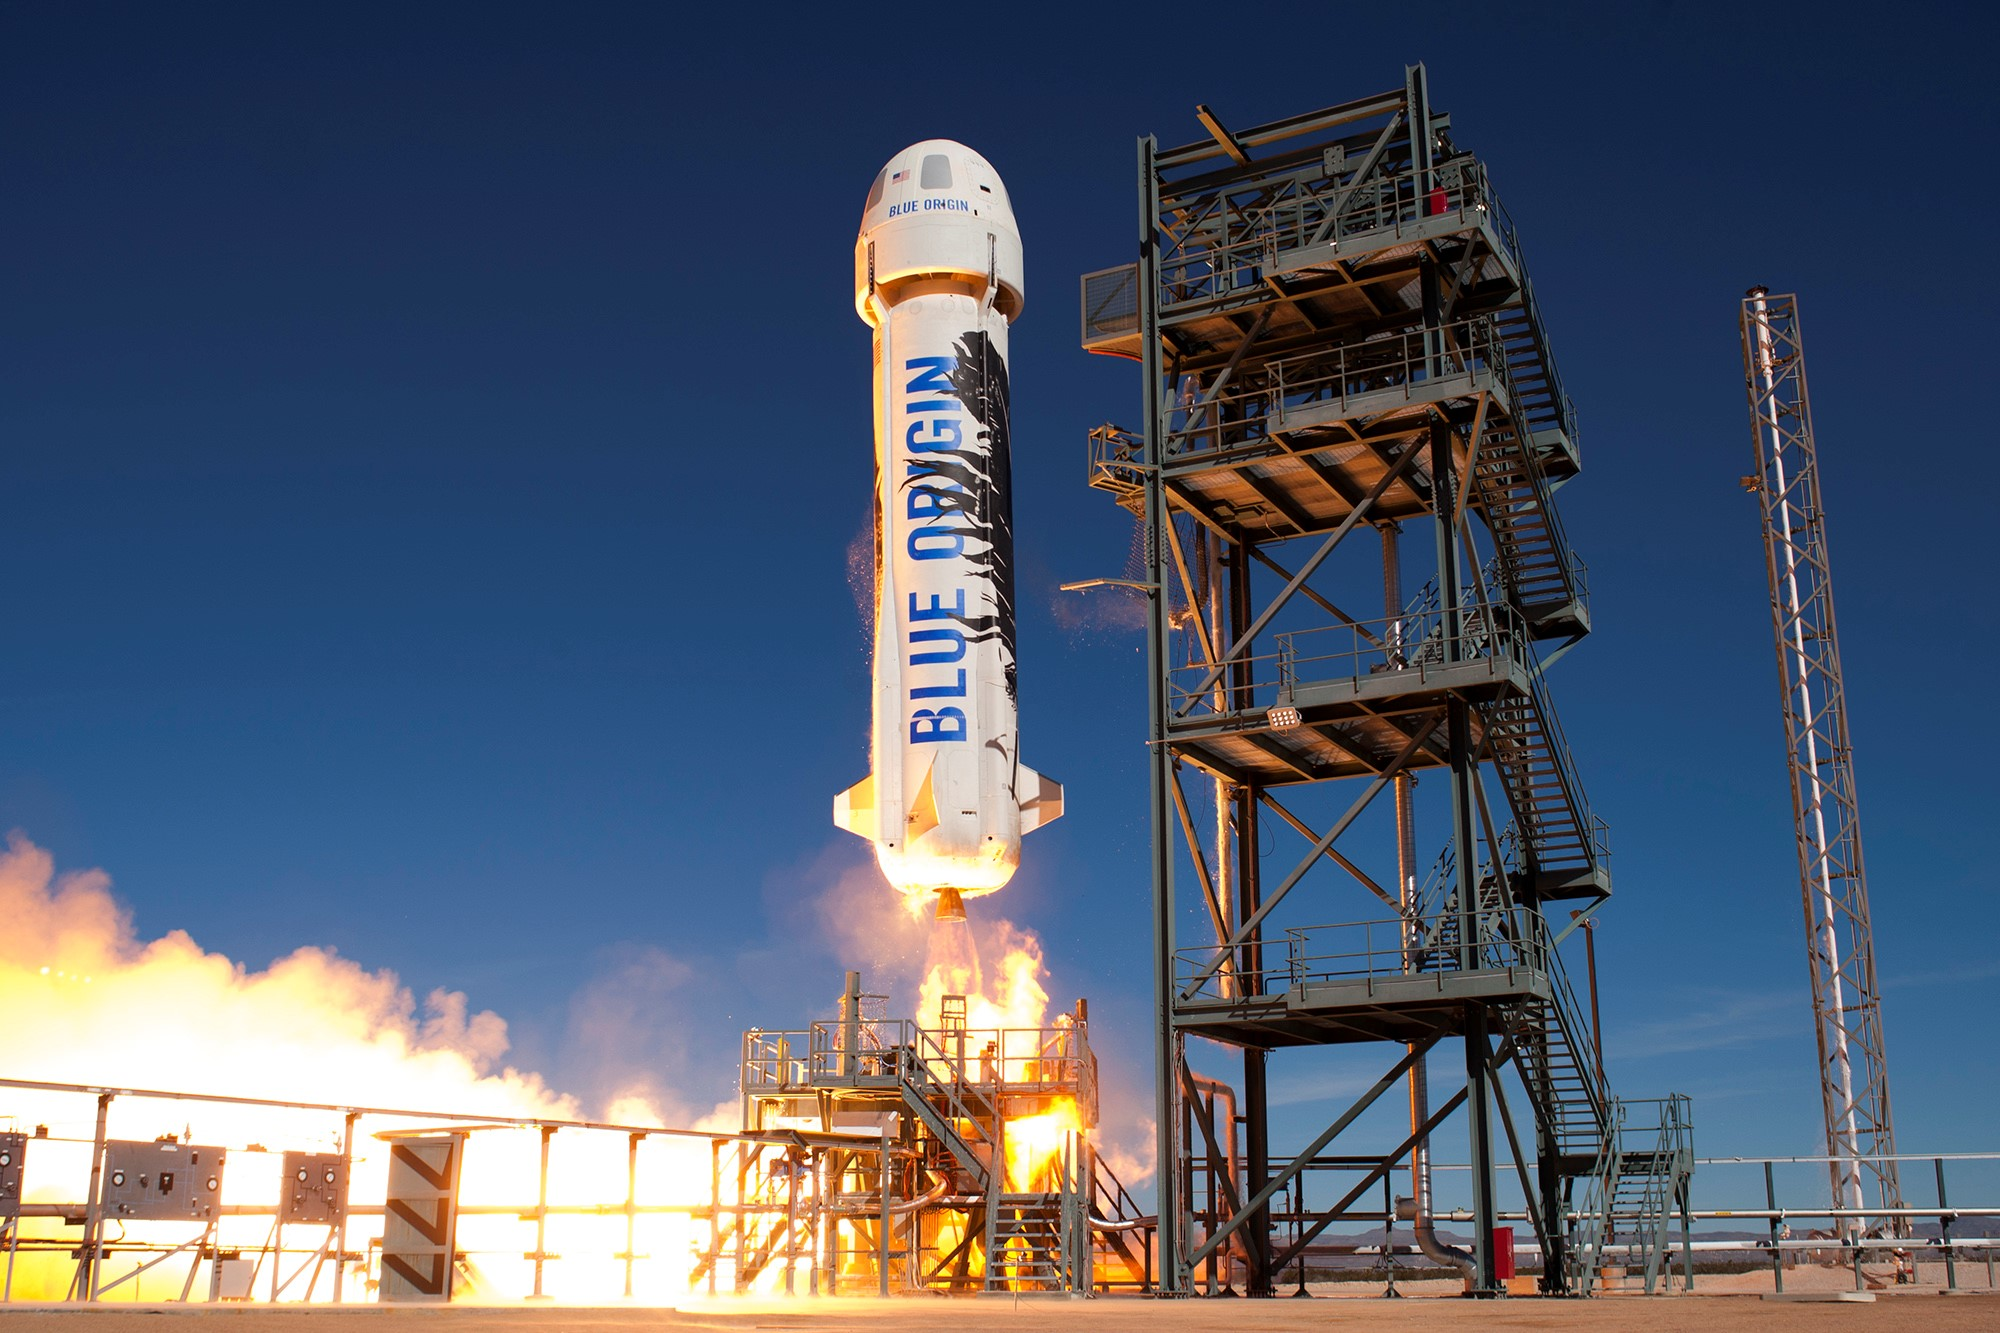 Blue Origin Successfully Launched and Landed Its Rocket for the Third Time